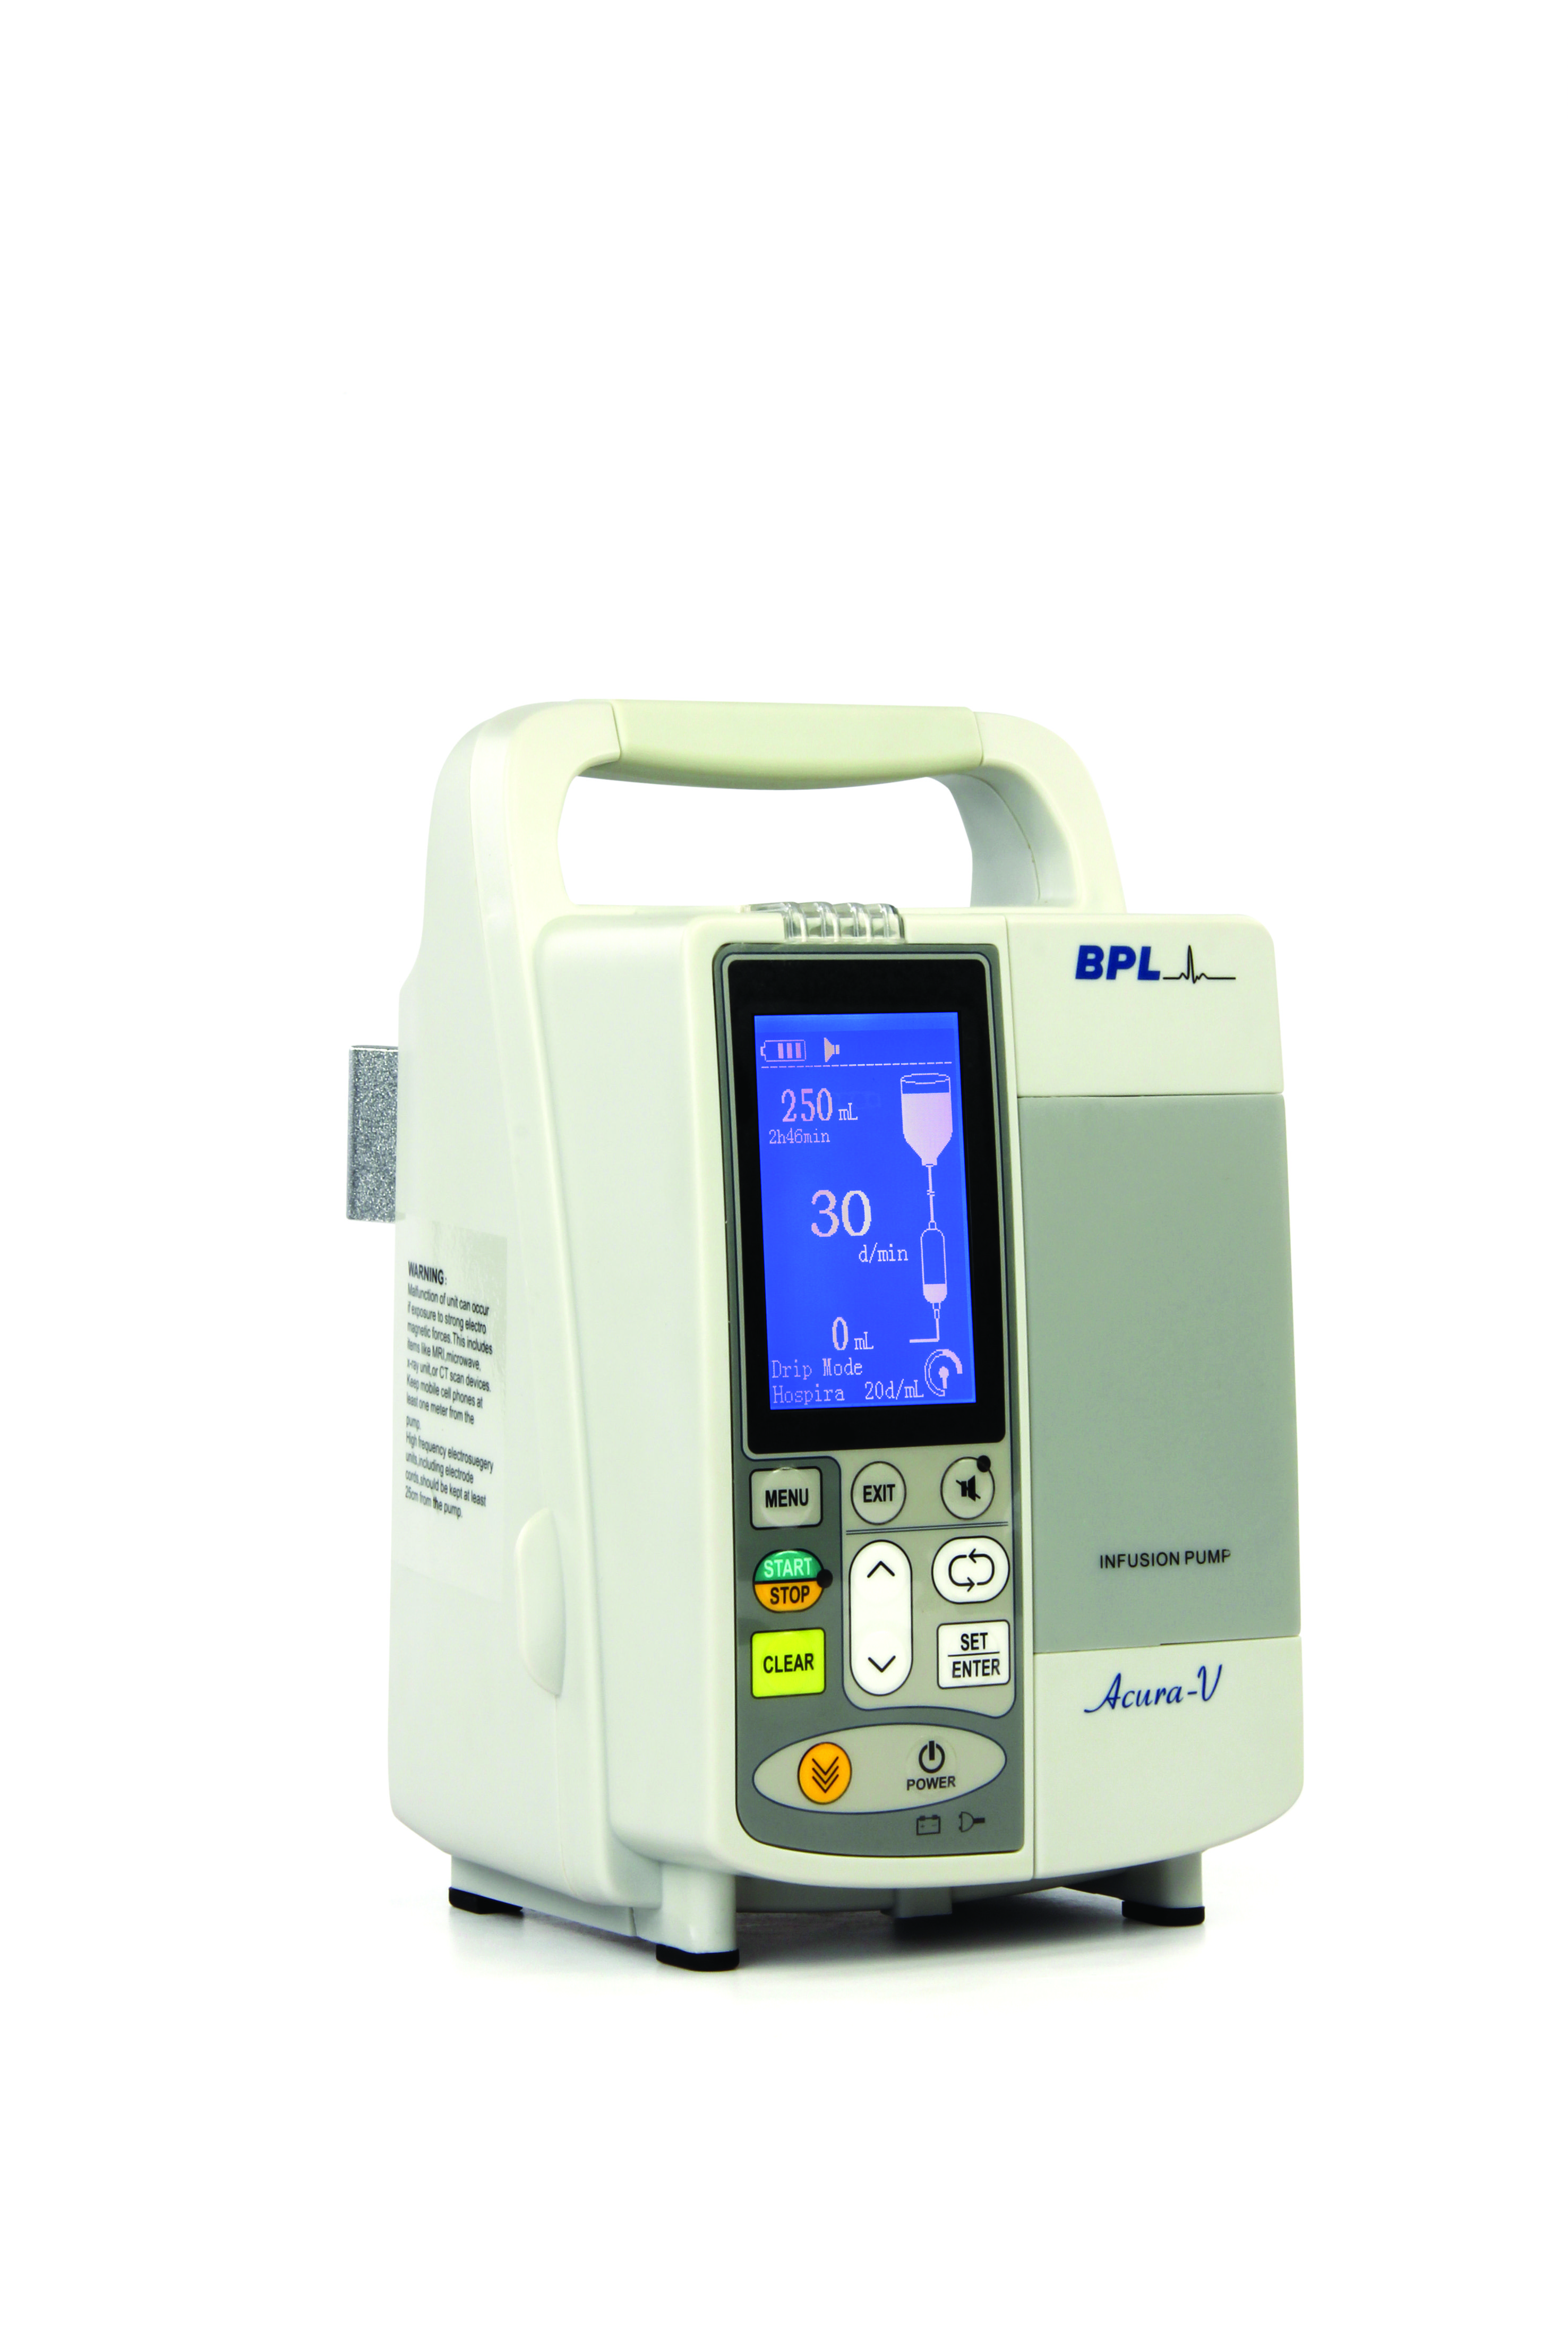 Acura V infusion volumetric pump es with a large blue LCD display